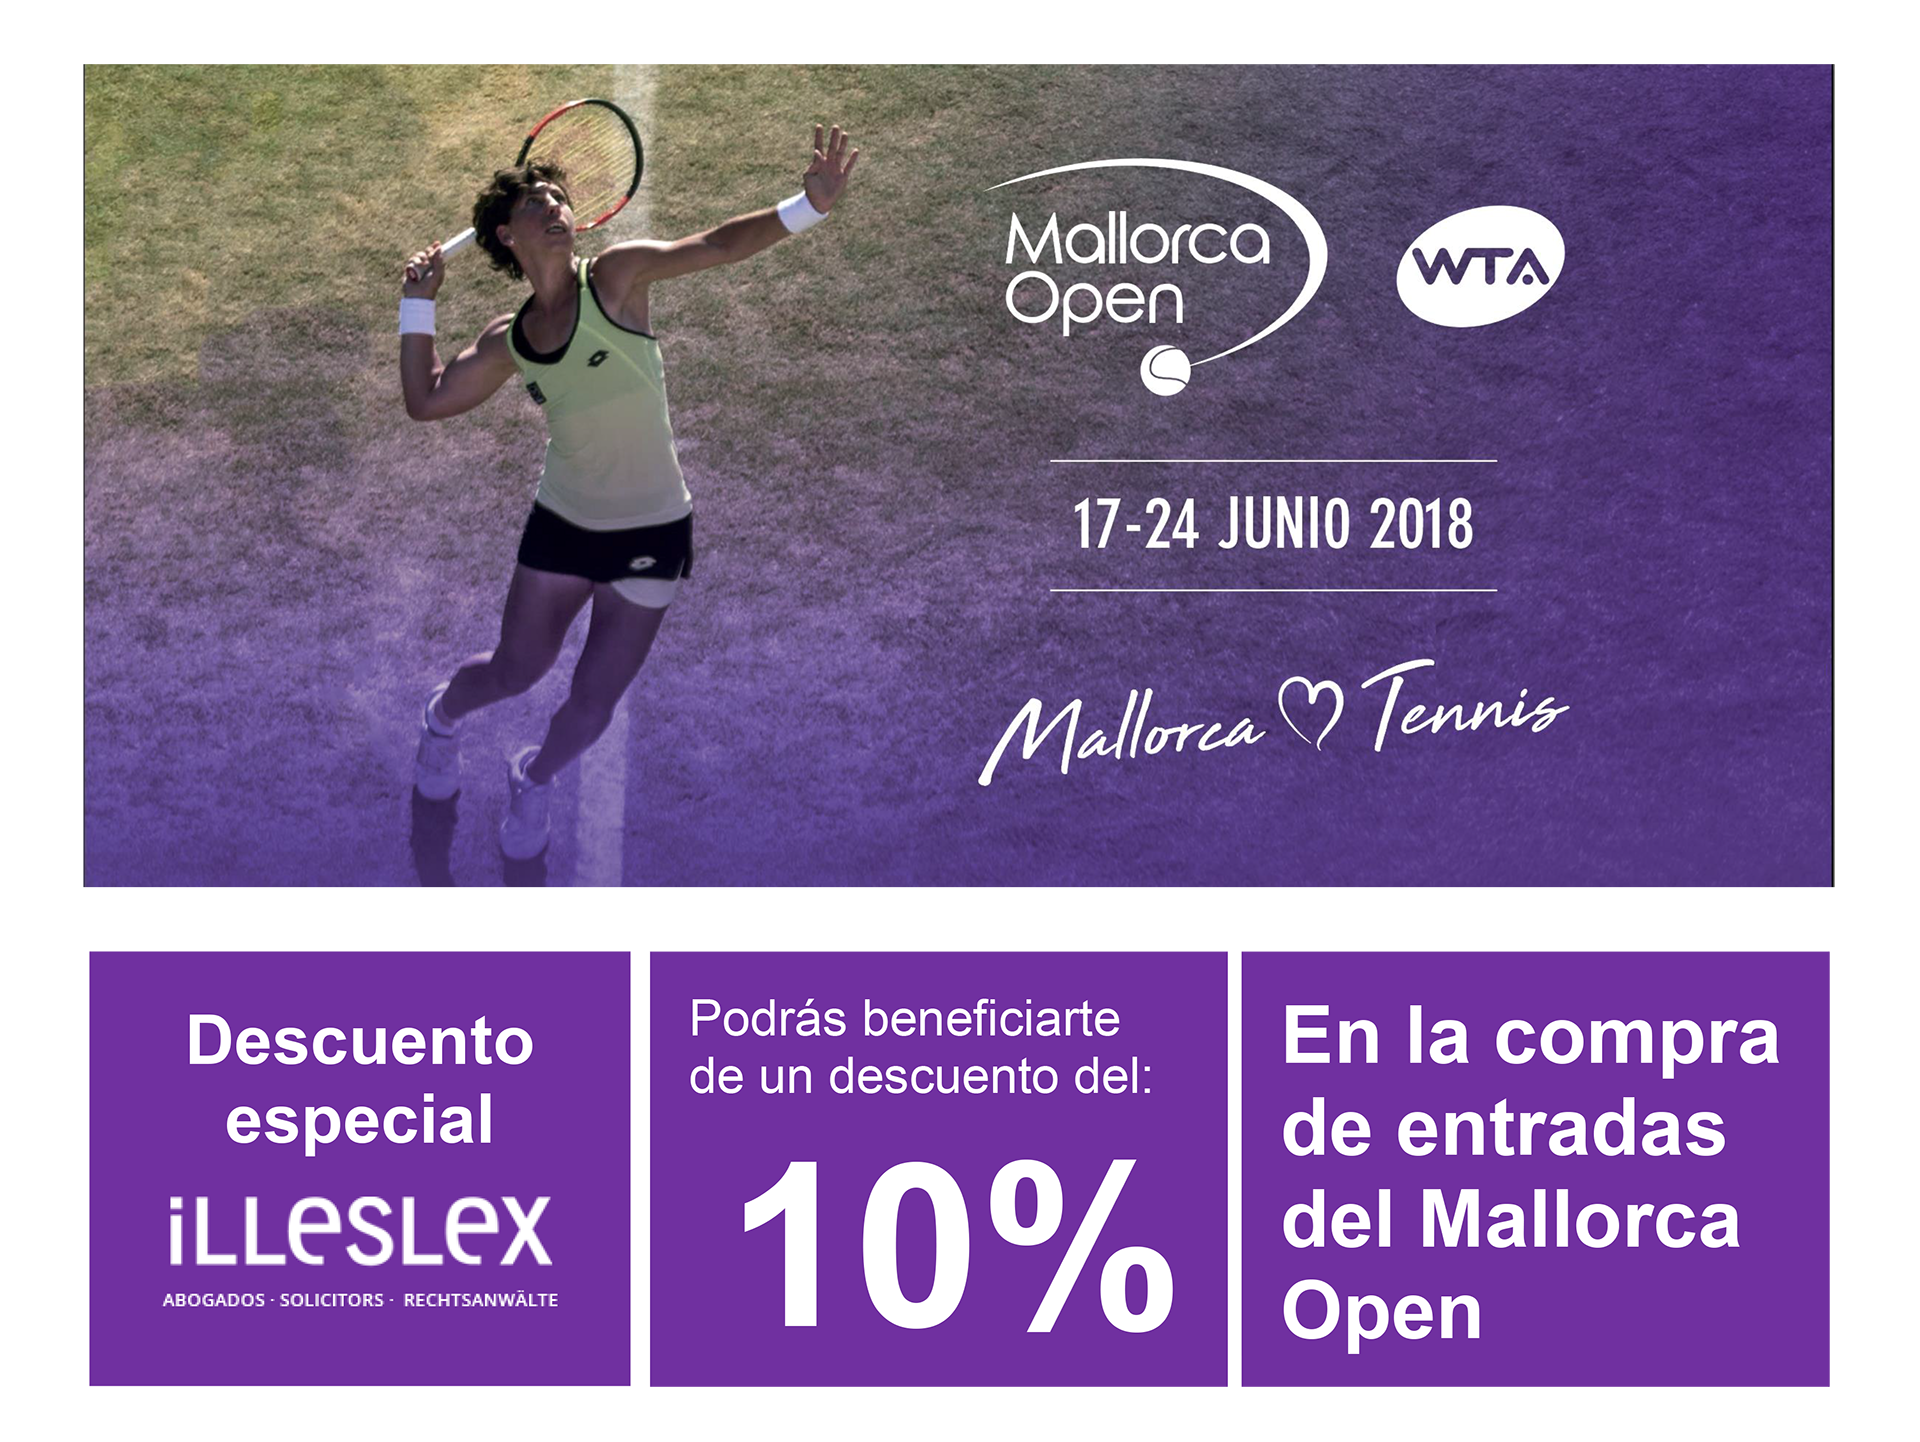 Illeslex, asesor legal del WTA Mallorca Open